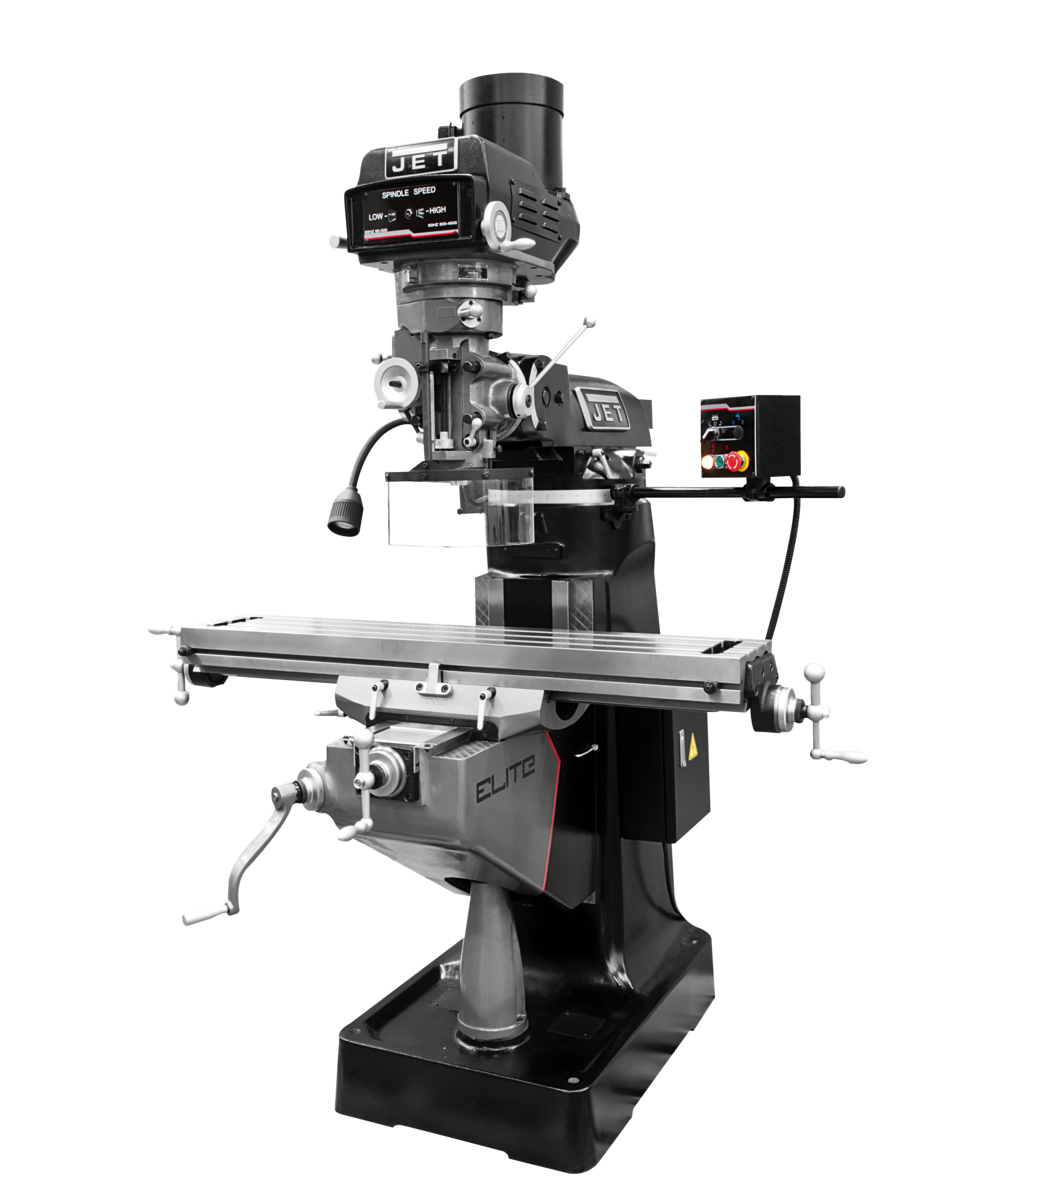 ETM-949 Mill with 2-Axis Newall DP700 DRO and Servo X, Y, Z-Axis Powerfeeds and USA Air Powered Draw Bar